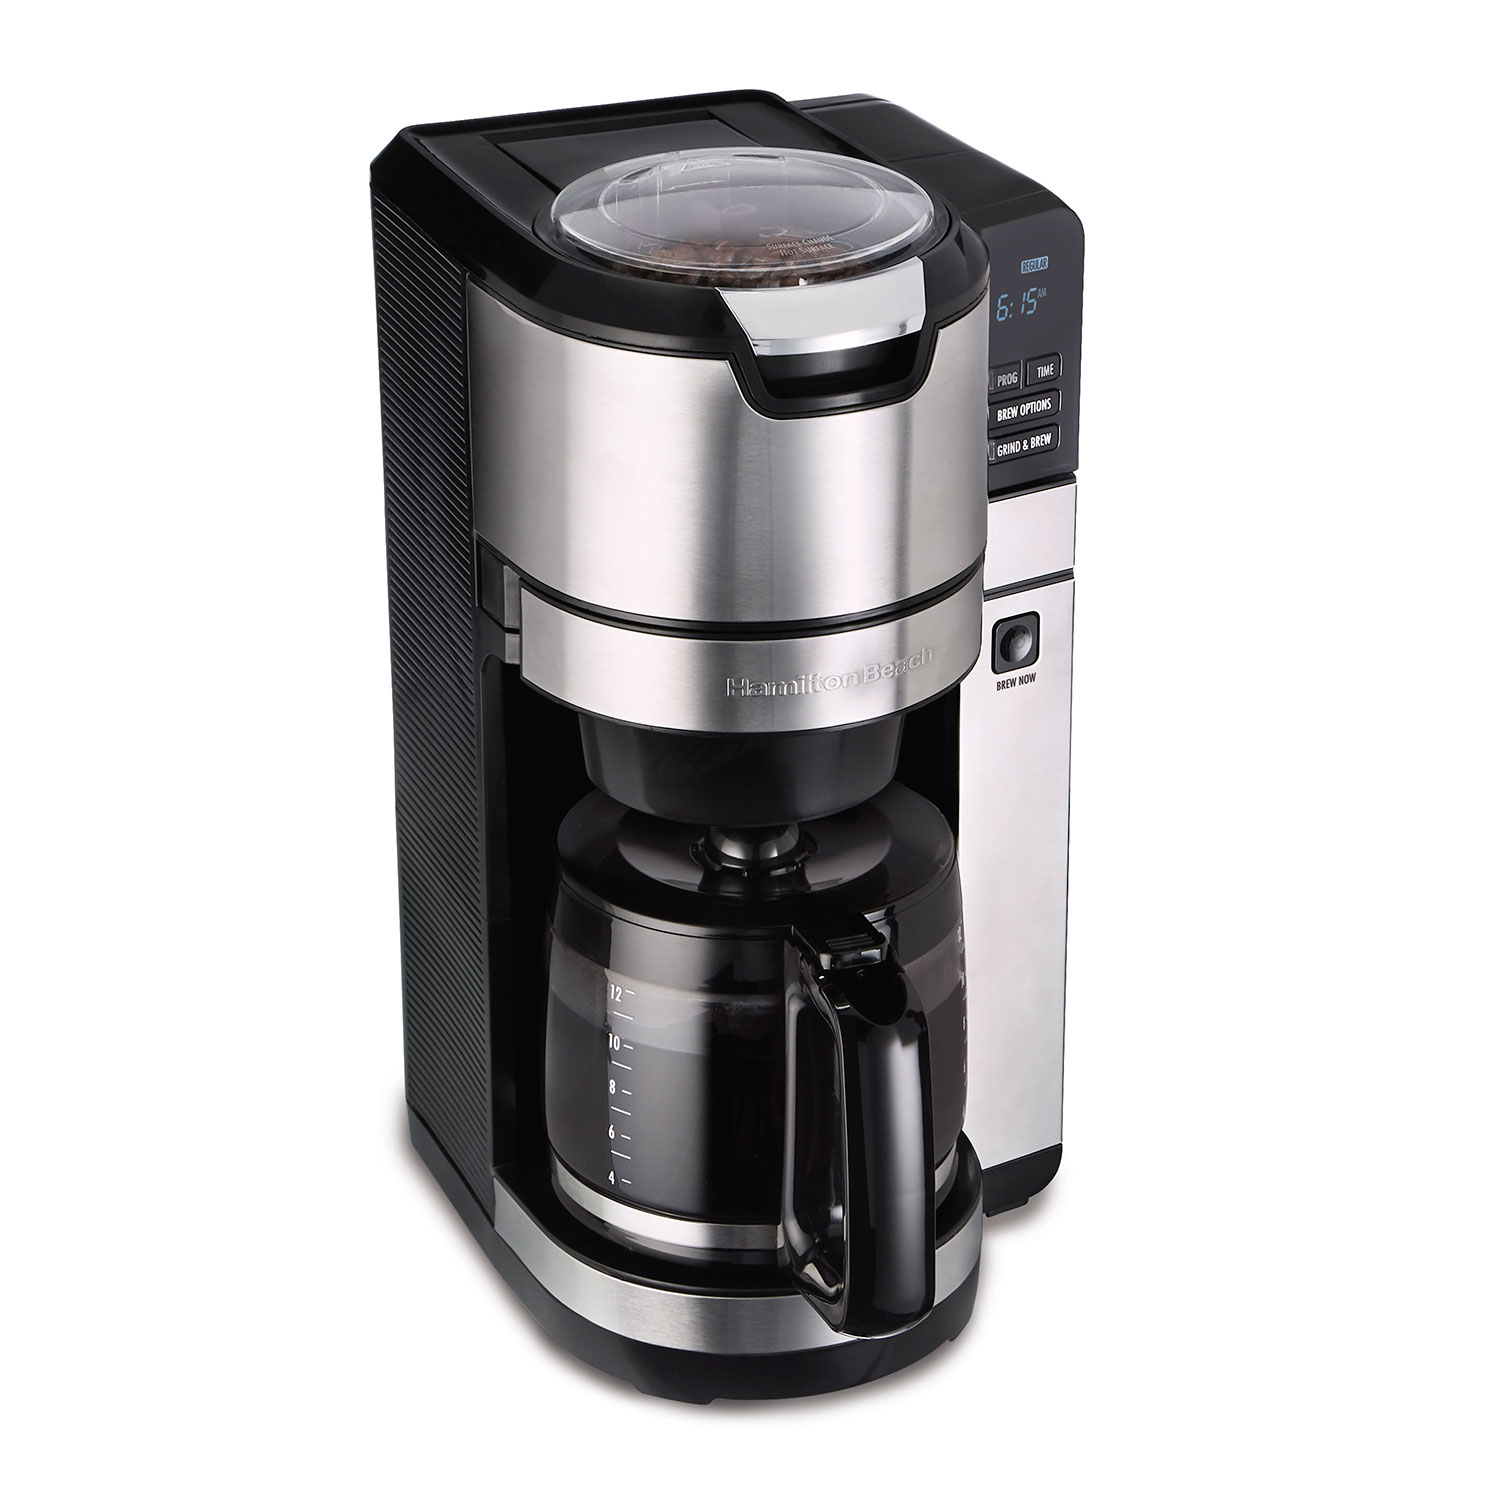 12-Cup Grind & Brew Coffee Maker (45500)